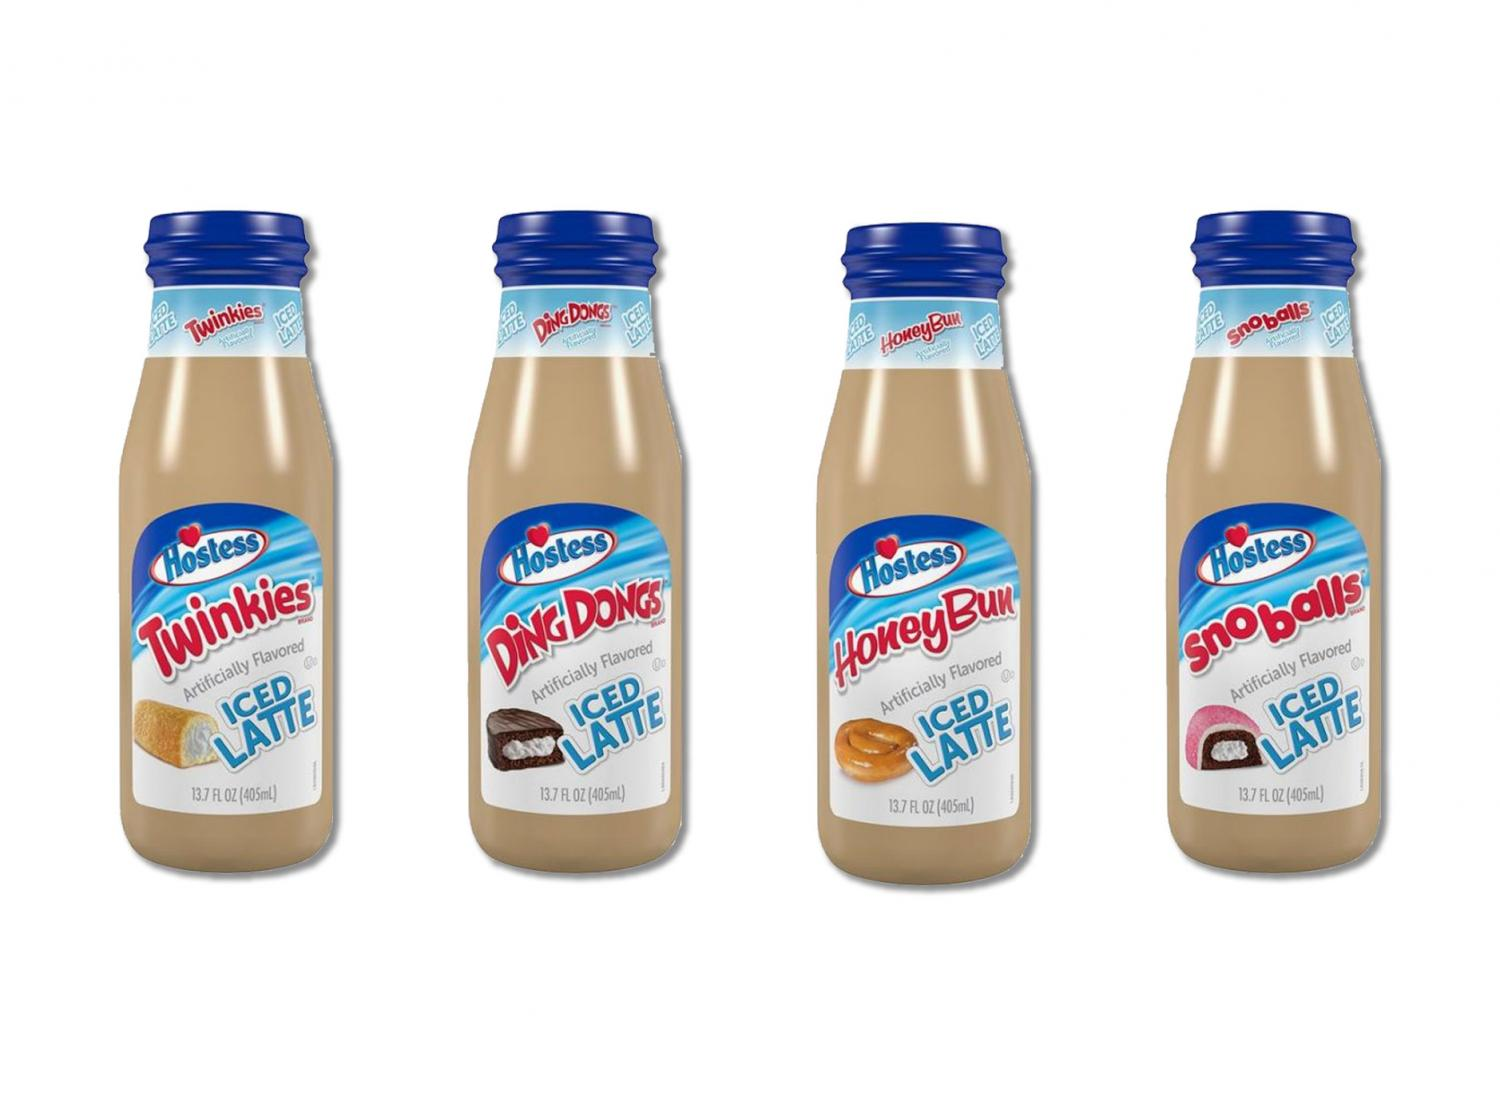 Hostess Twinkie Flavored Iced Latte Bottles - Dessert latte tastes like twinkies